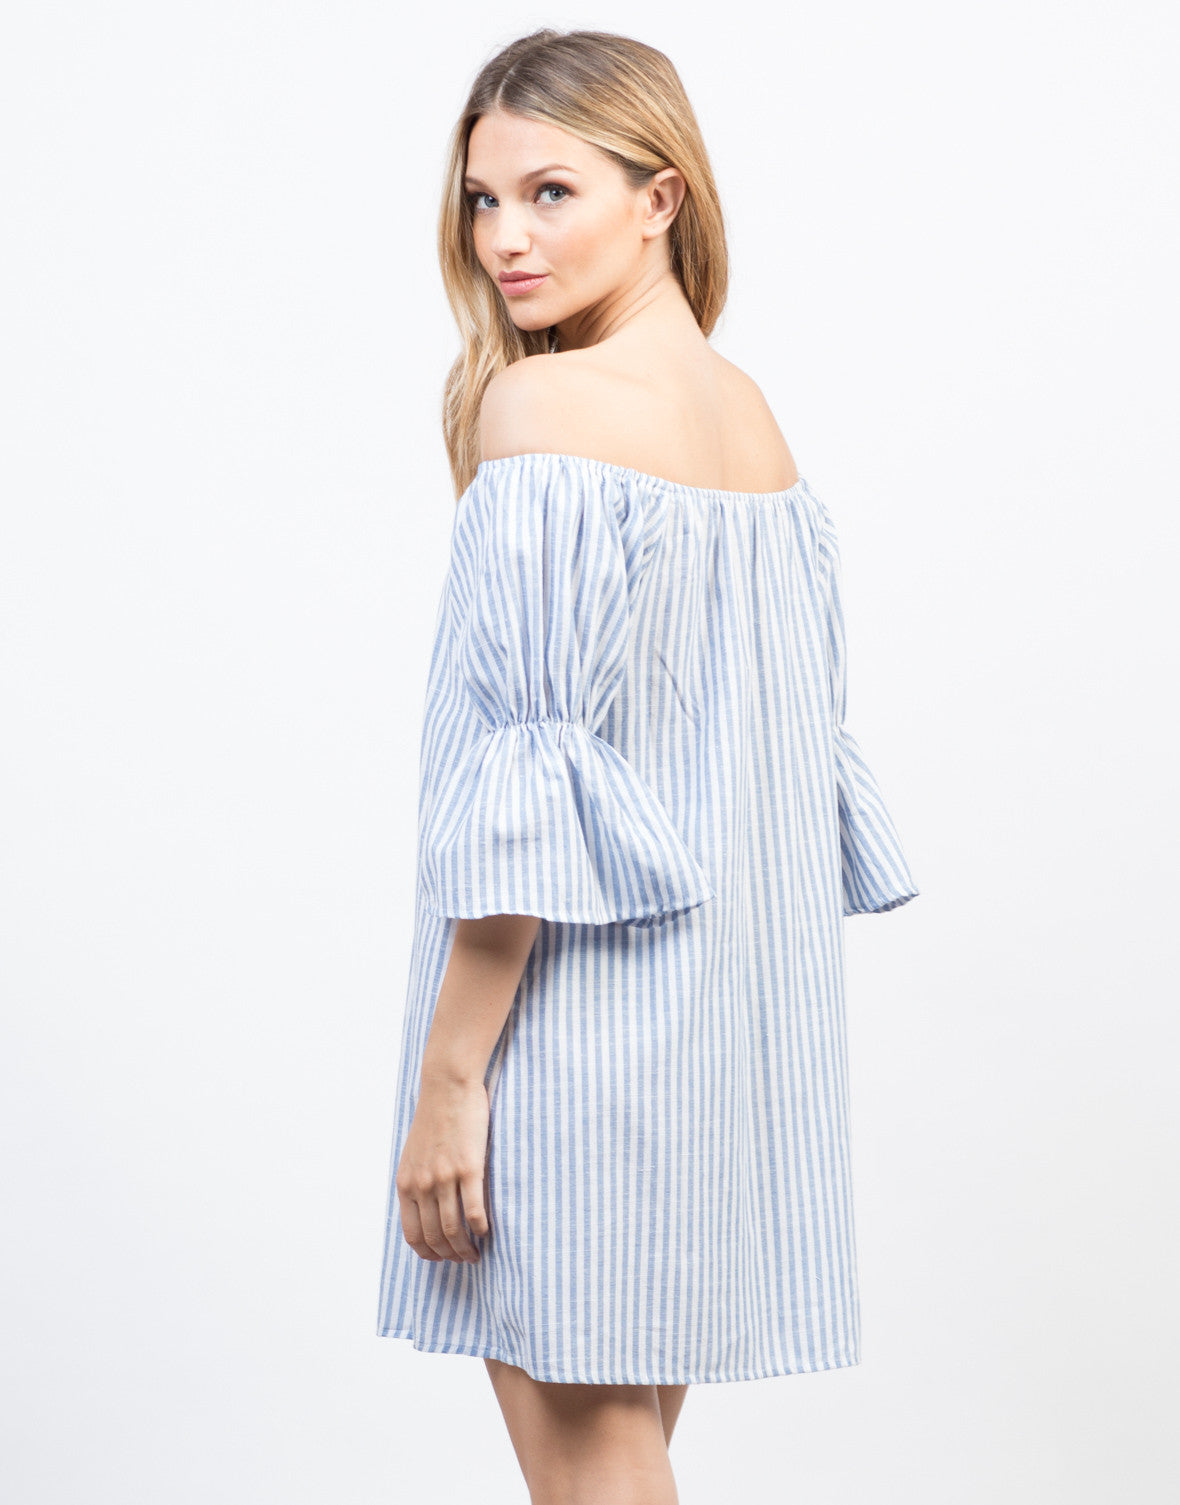 Back View of Stay Off-the-Shoulder Vacation Dress